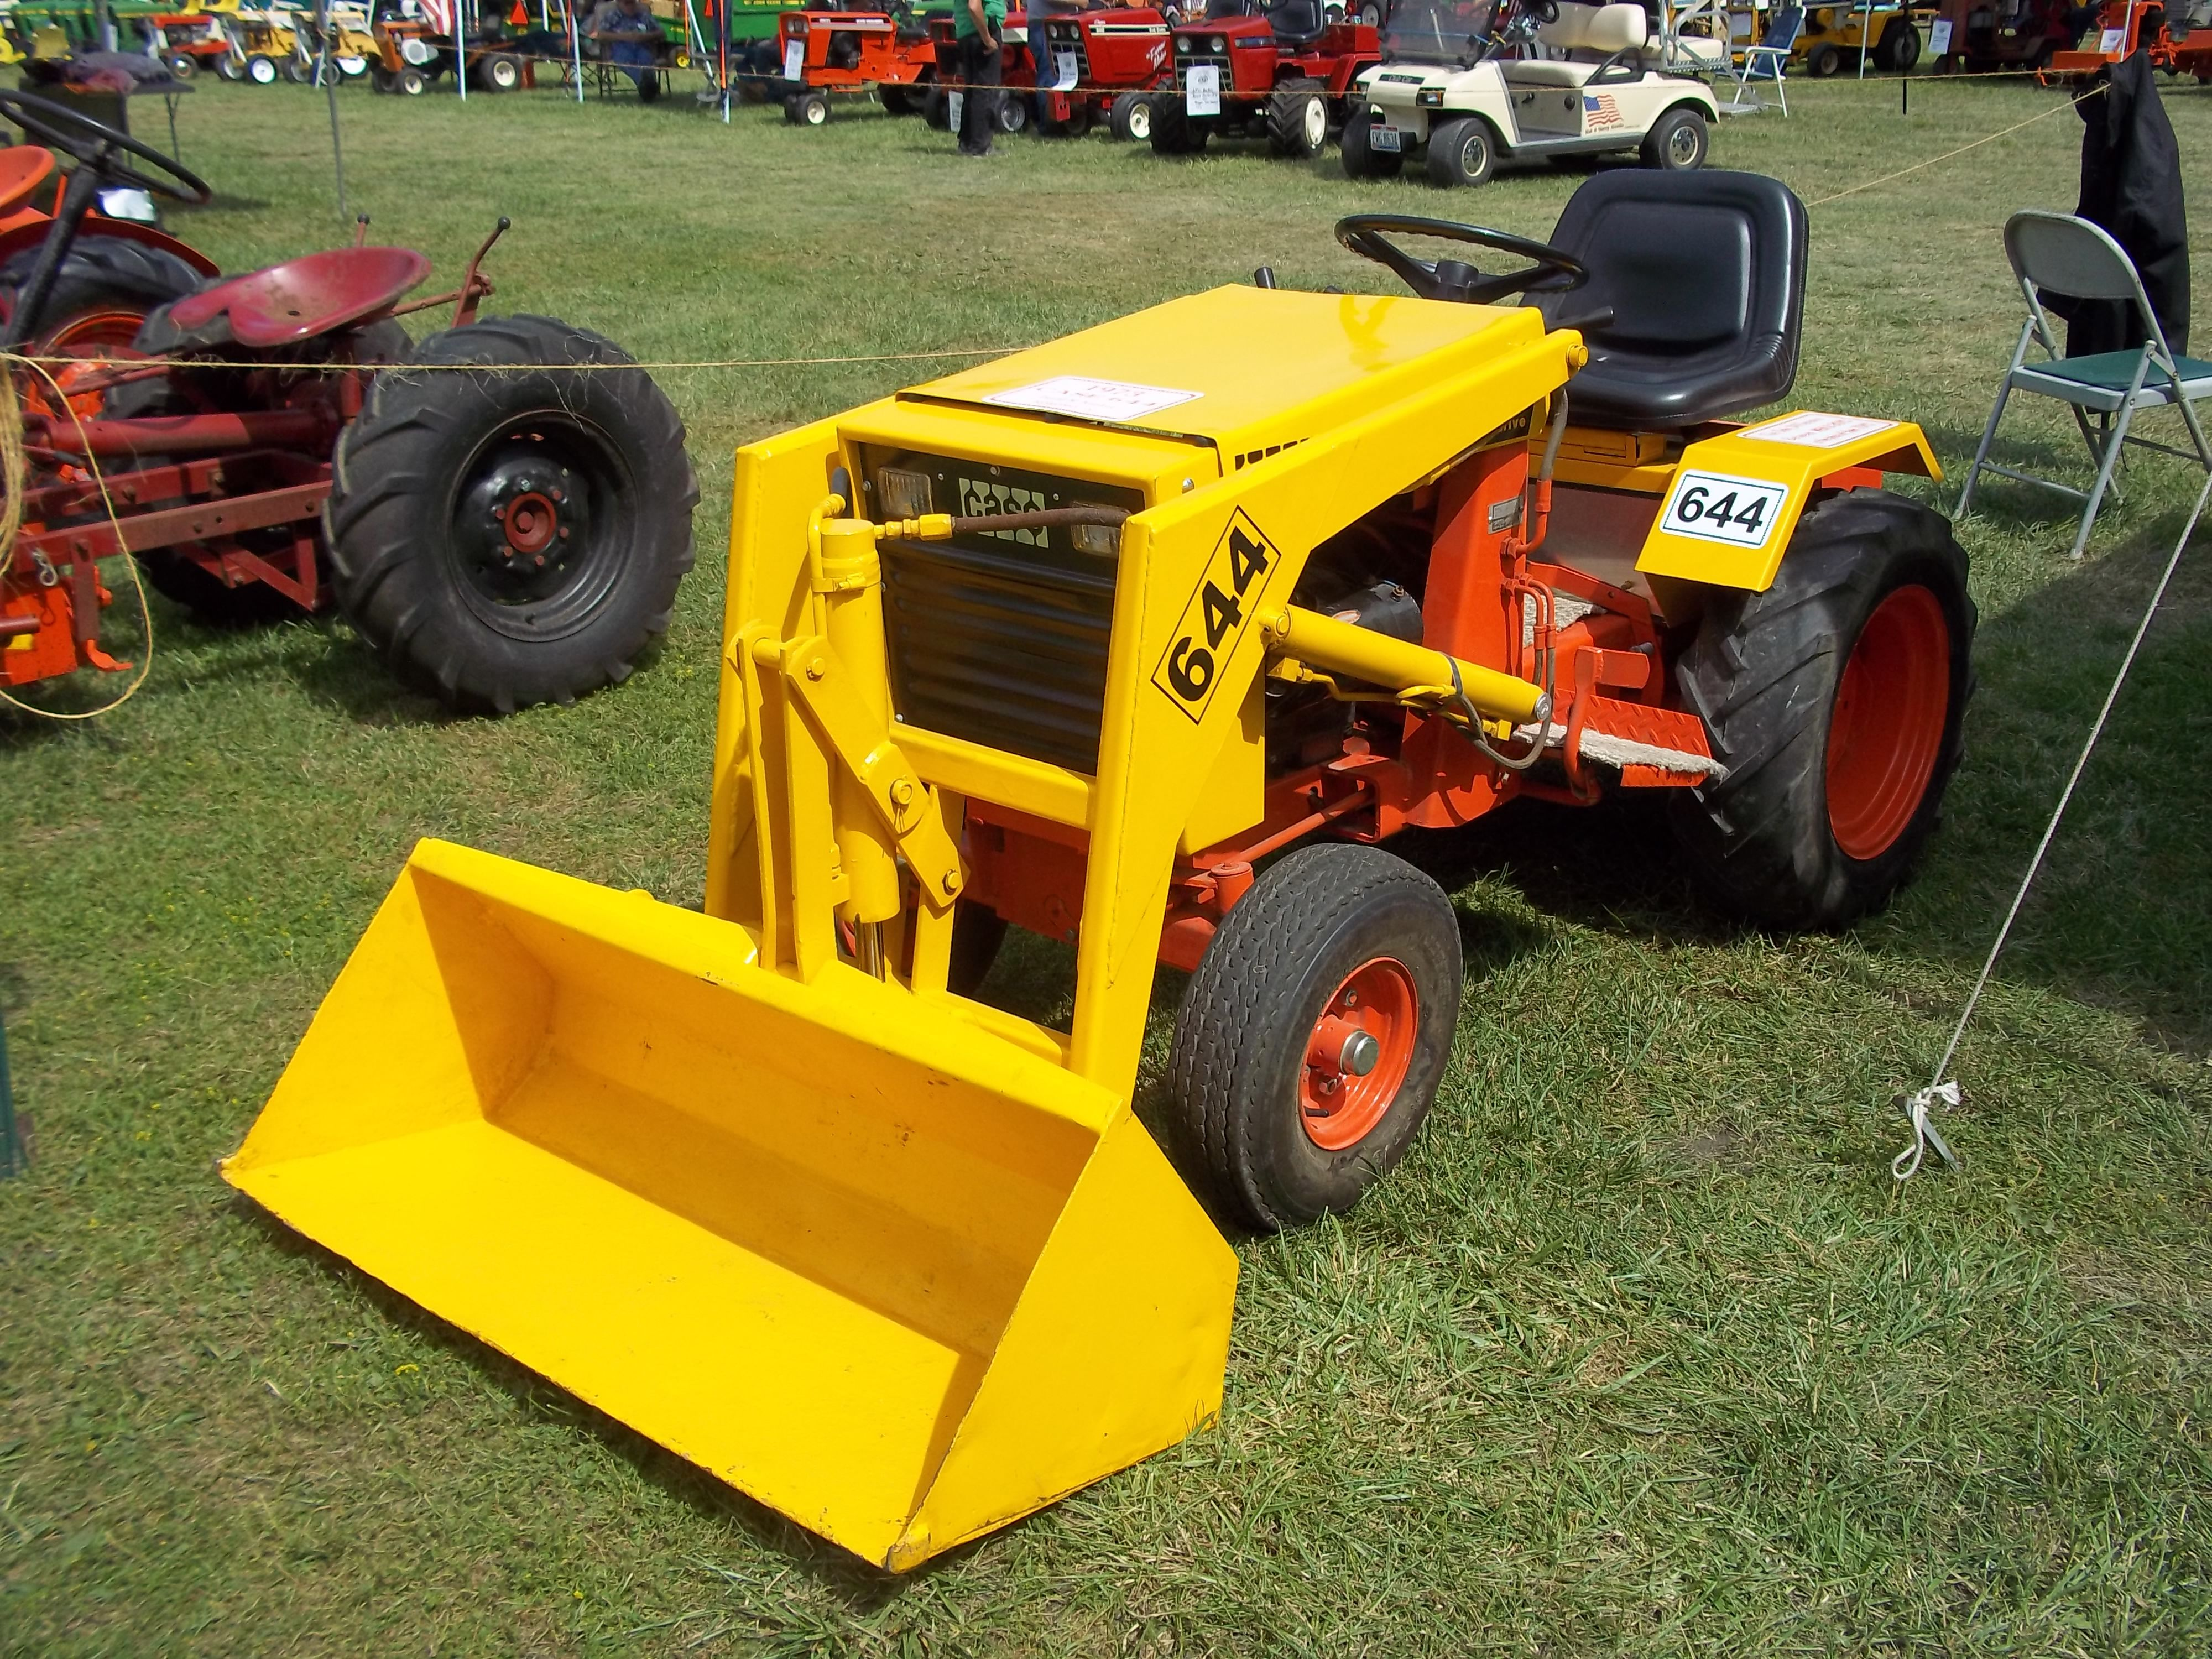 1970s Case 644 garden loader tractor  Would be nice to have